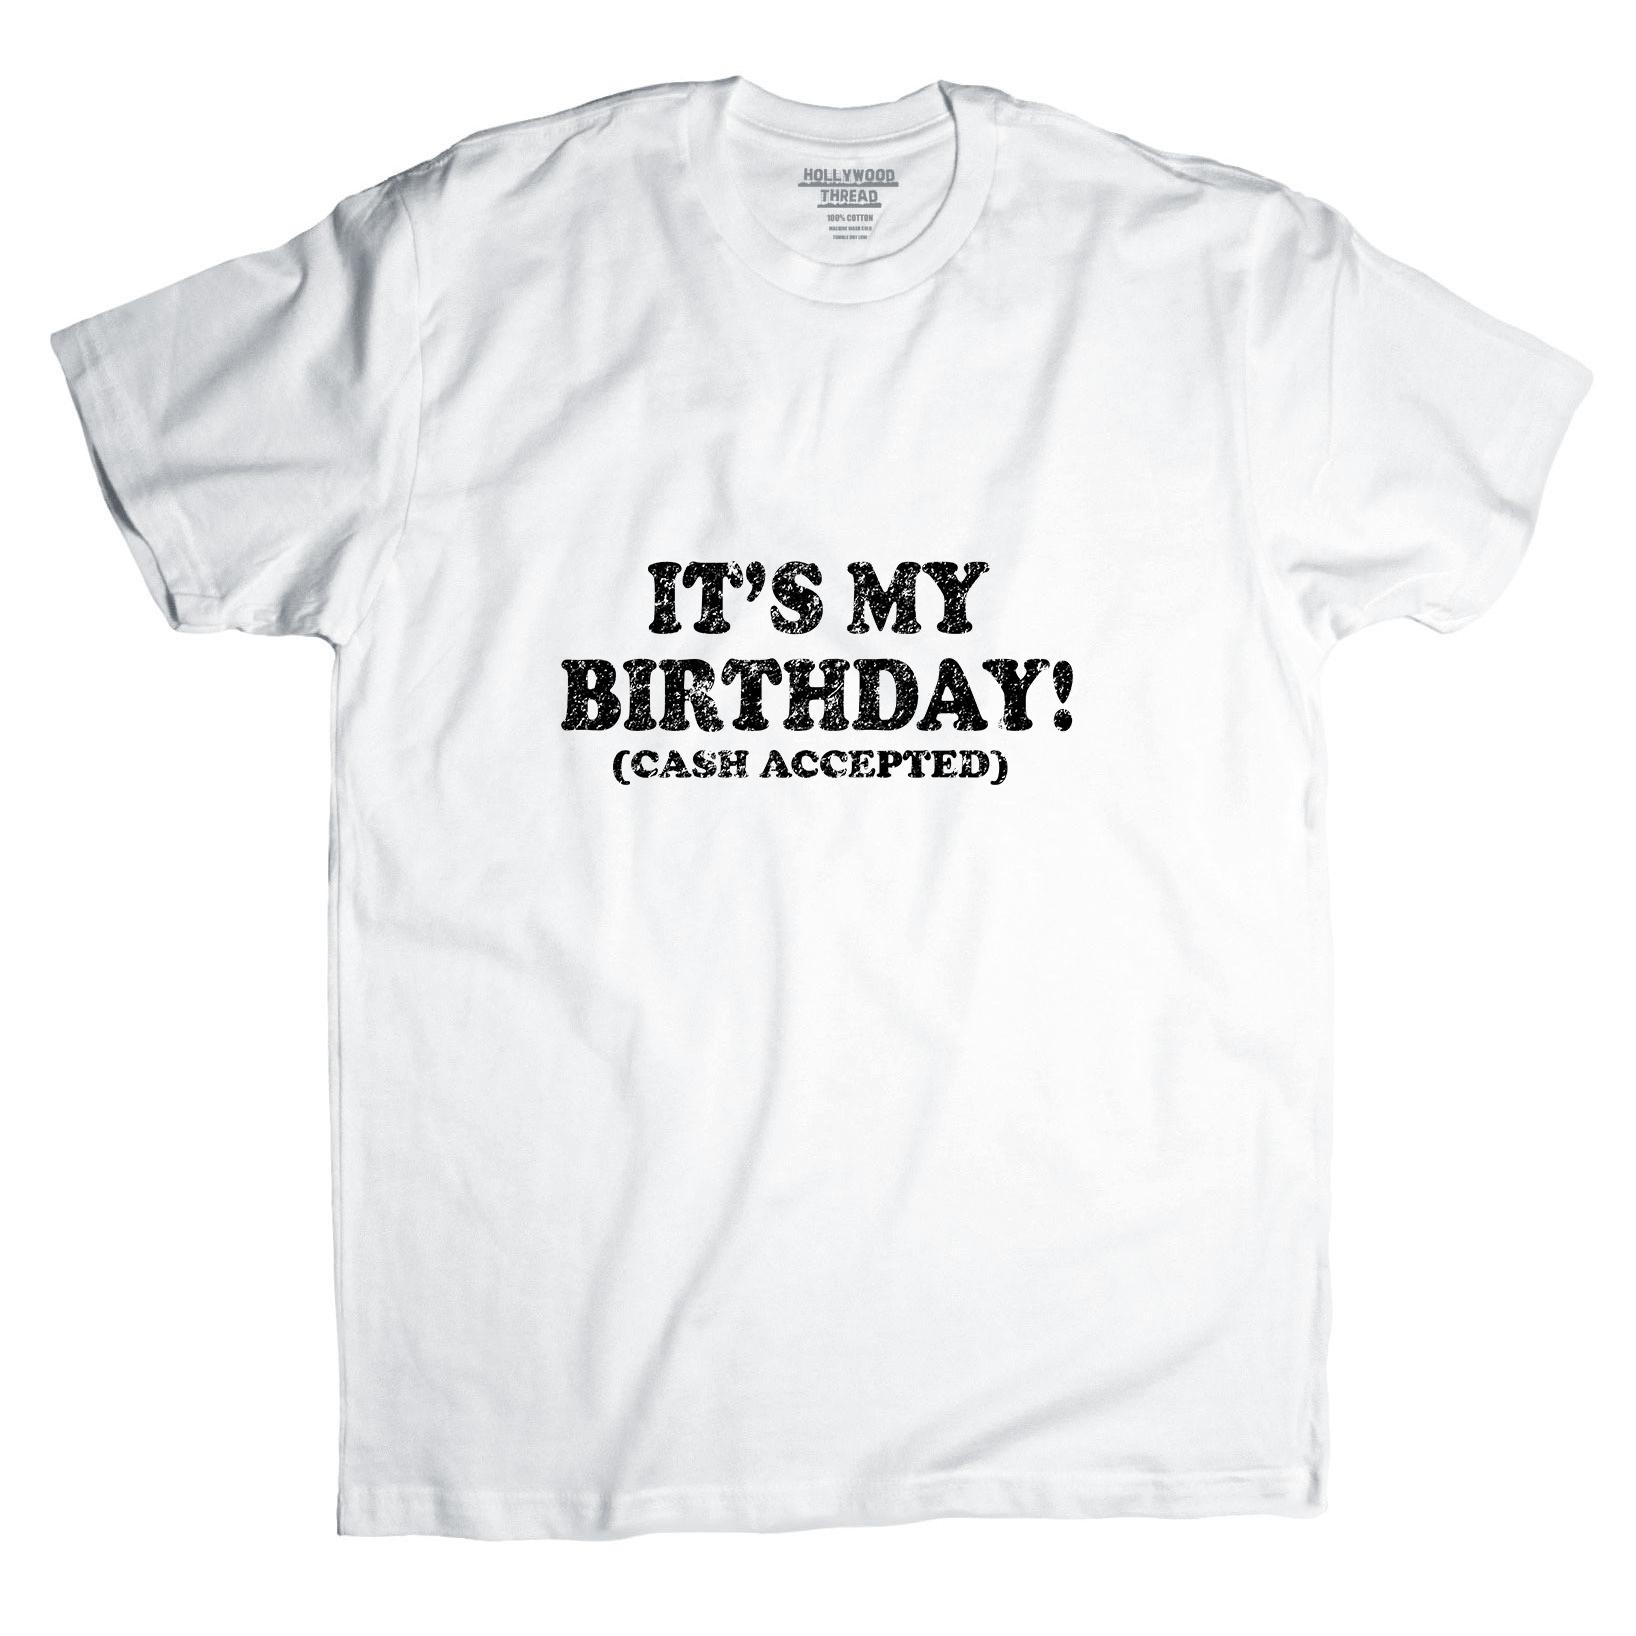 It's My Birthday! (Cash Accepted) - Hilarious Graphic Men's T-Shirt